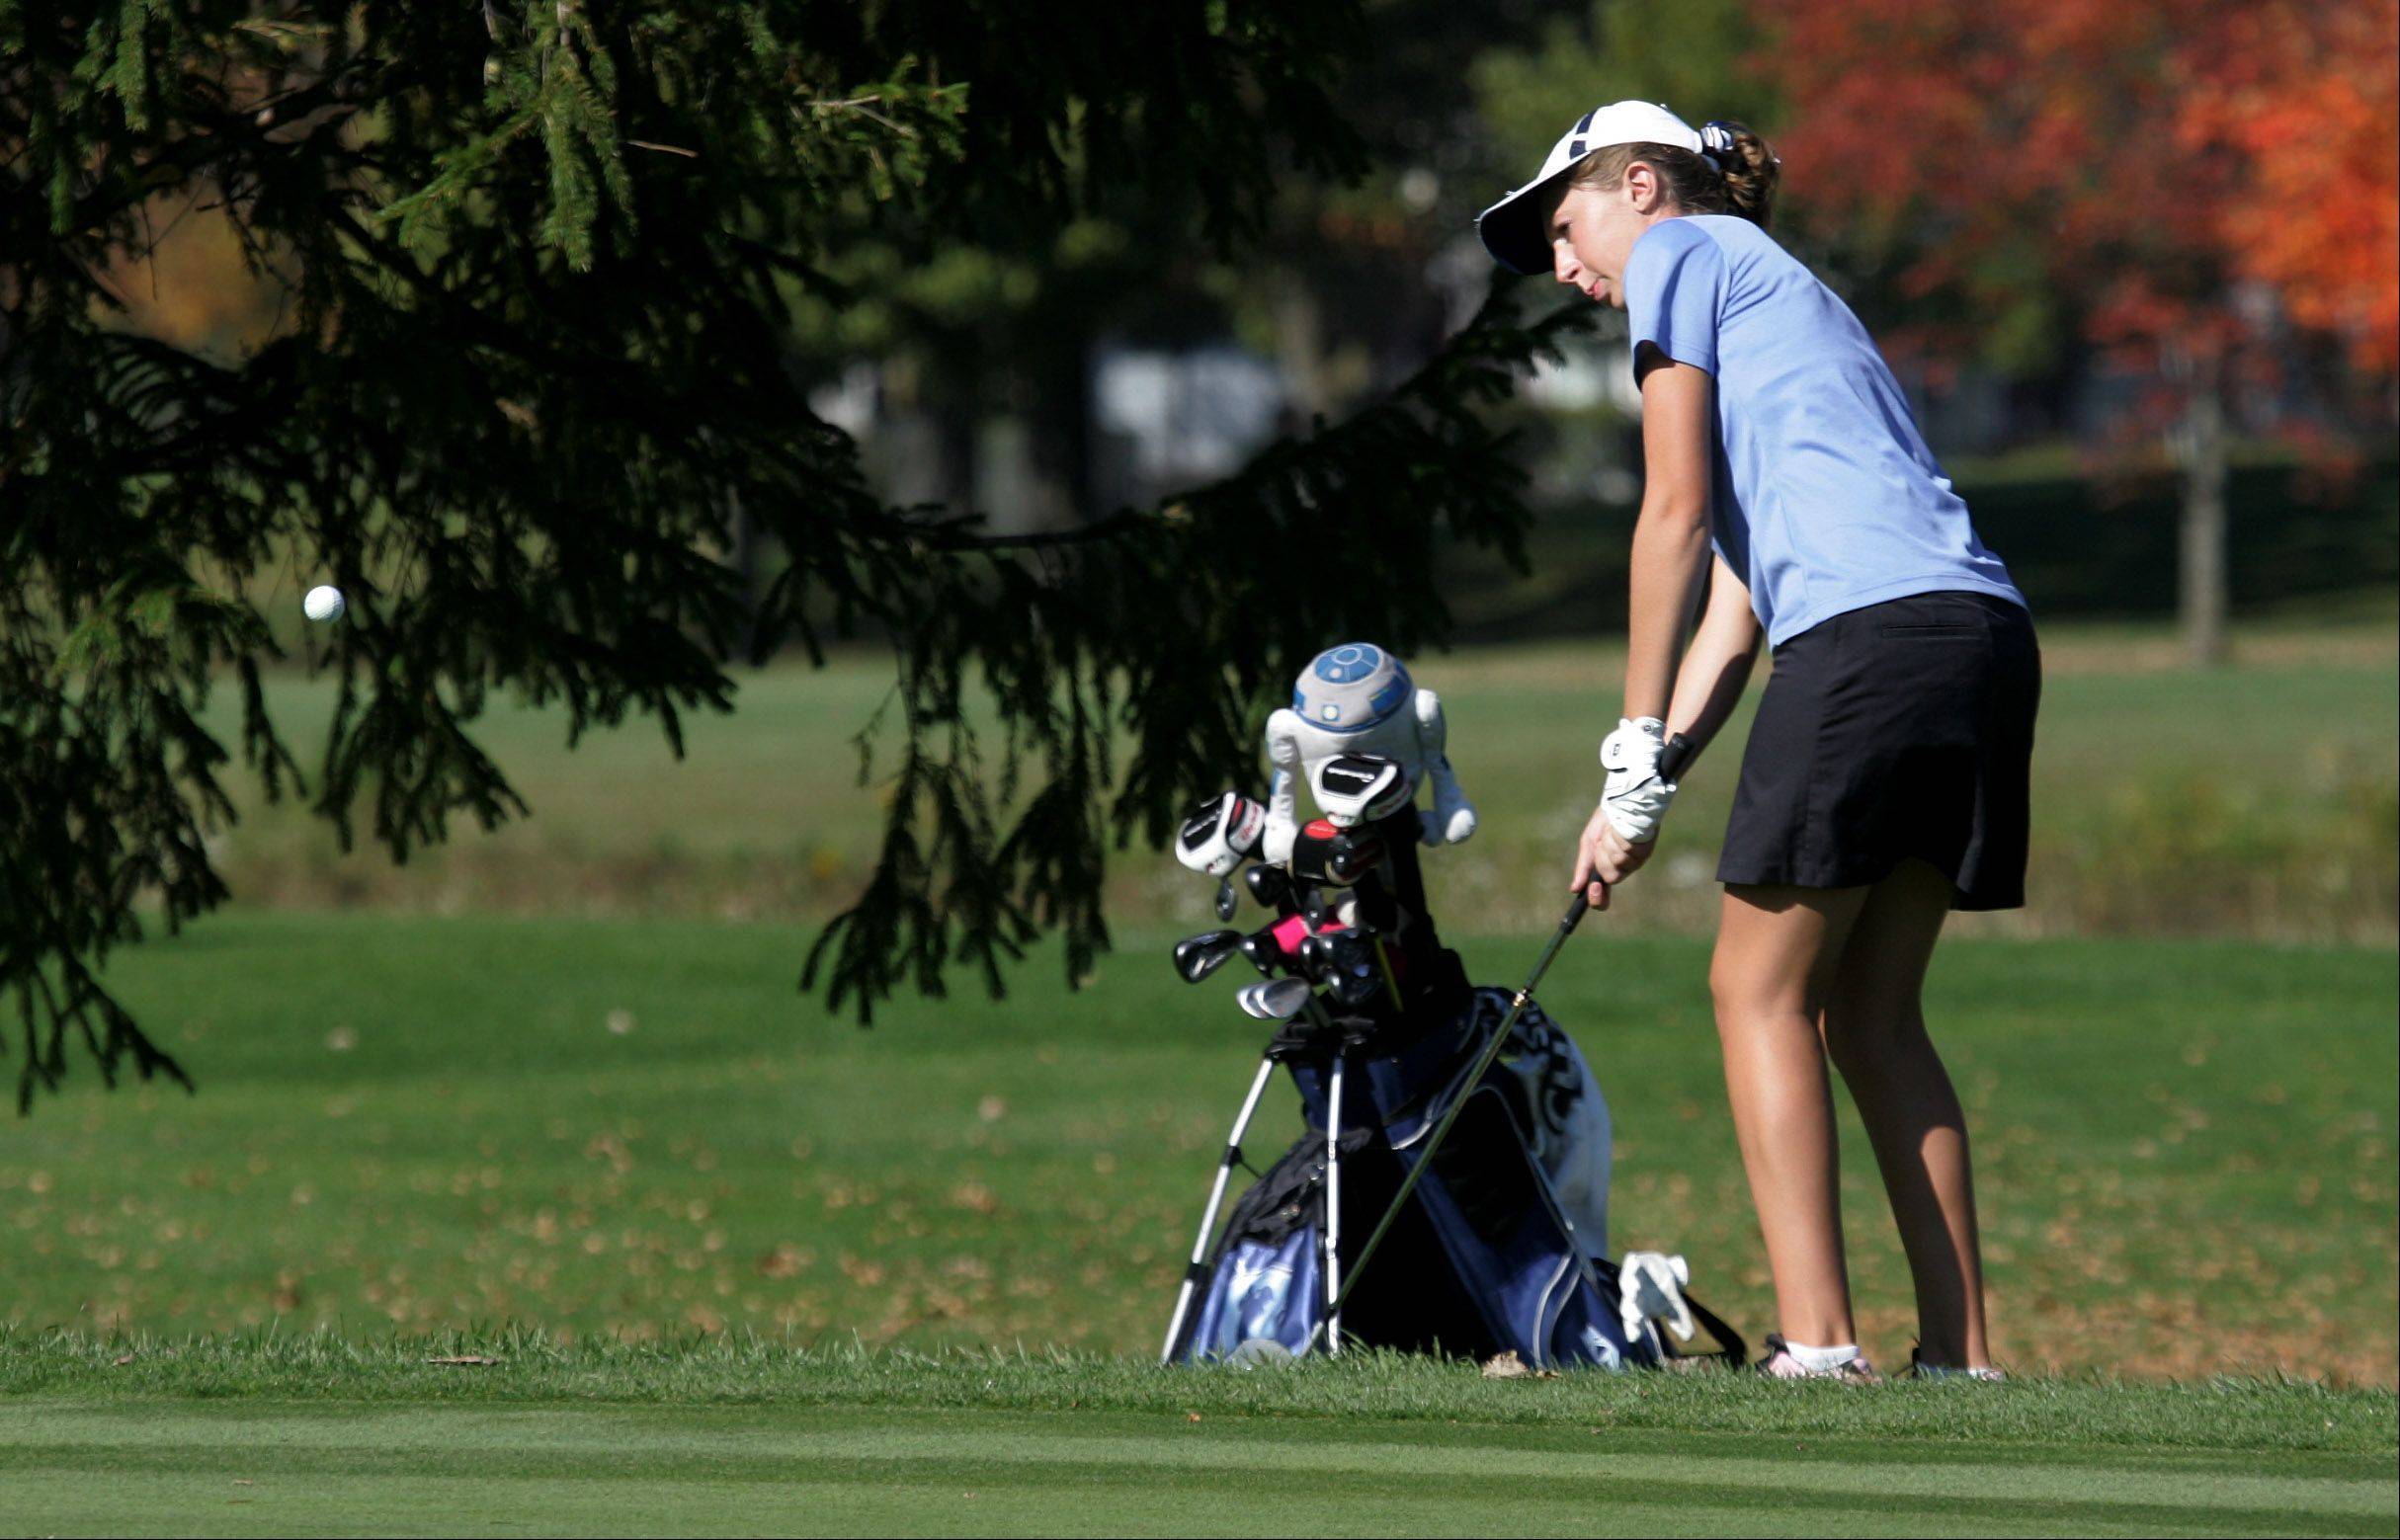 Prospect golfer Allison Walsh chips onto the green on the 10th hole during the Class 2A high school girls golf sectional Monday at Buffalo Grove Golf Club.